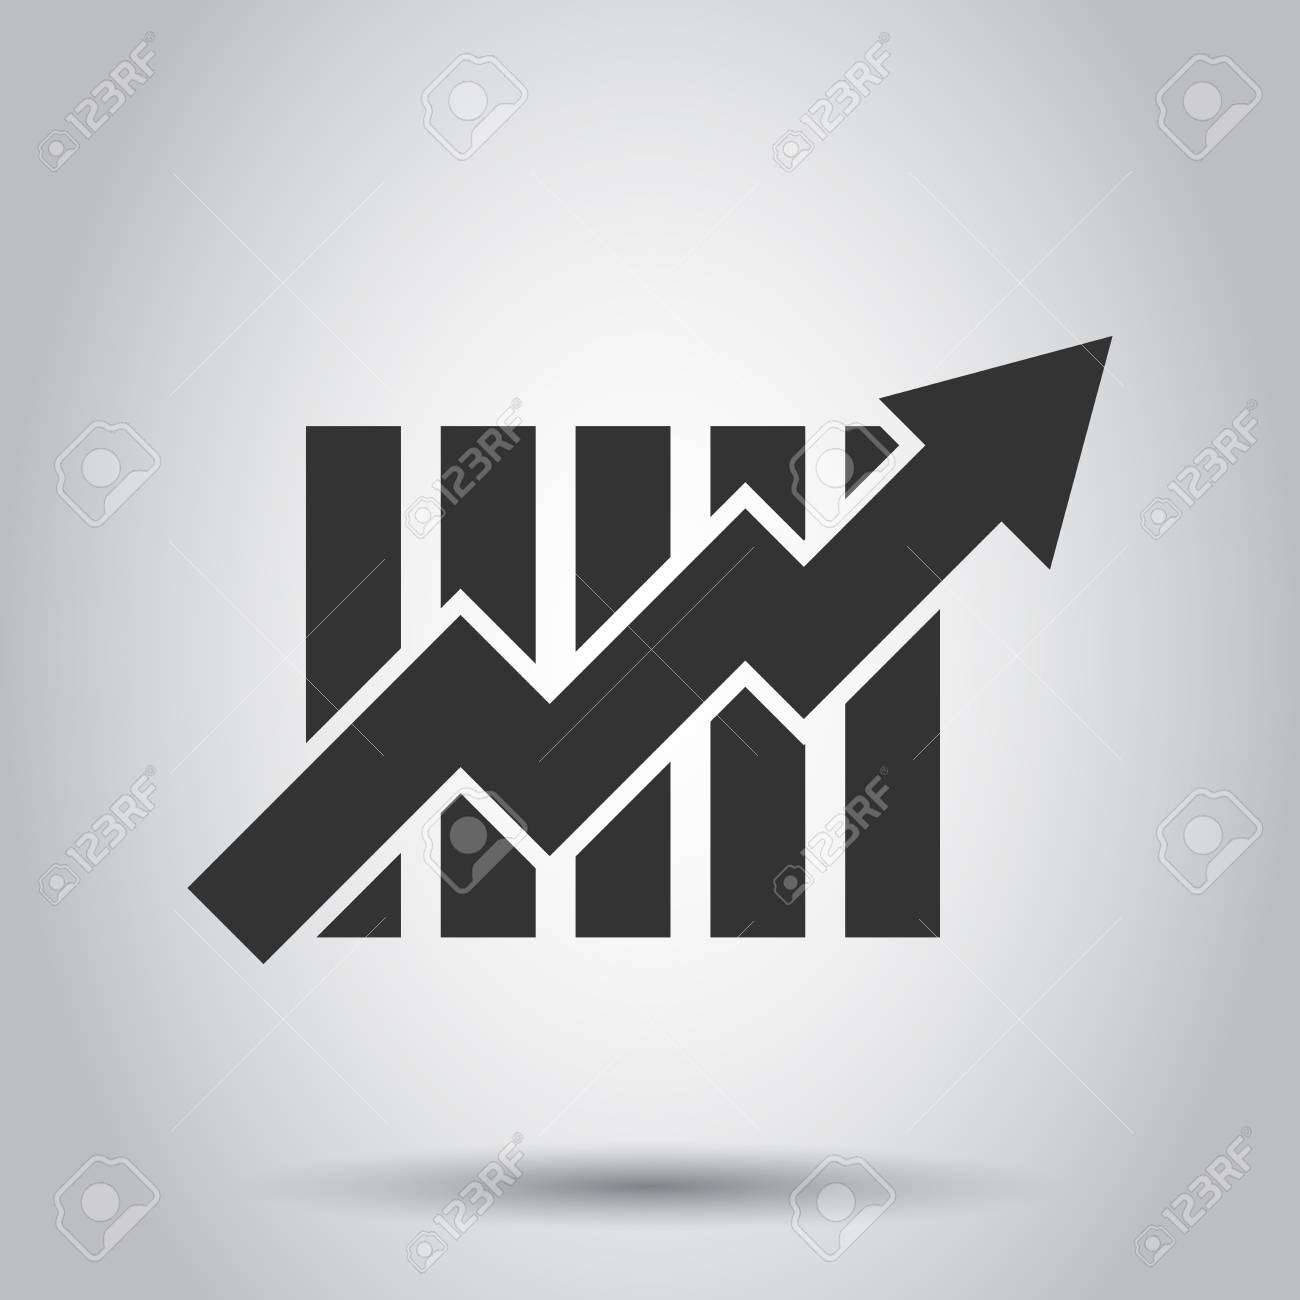 Growing bar graph icon in flat style. Increase arrow vector illustration on white background. Infographic progress business concept. - 125239887